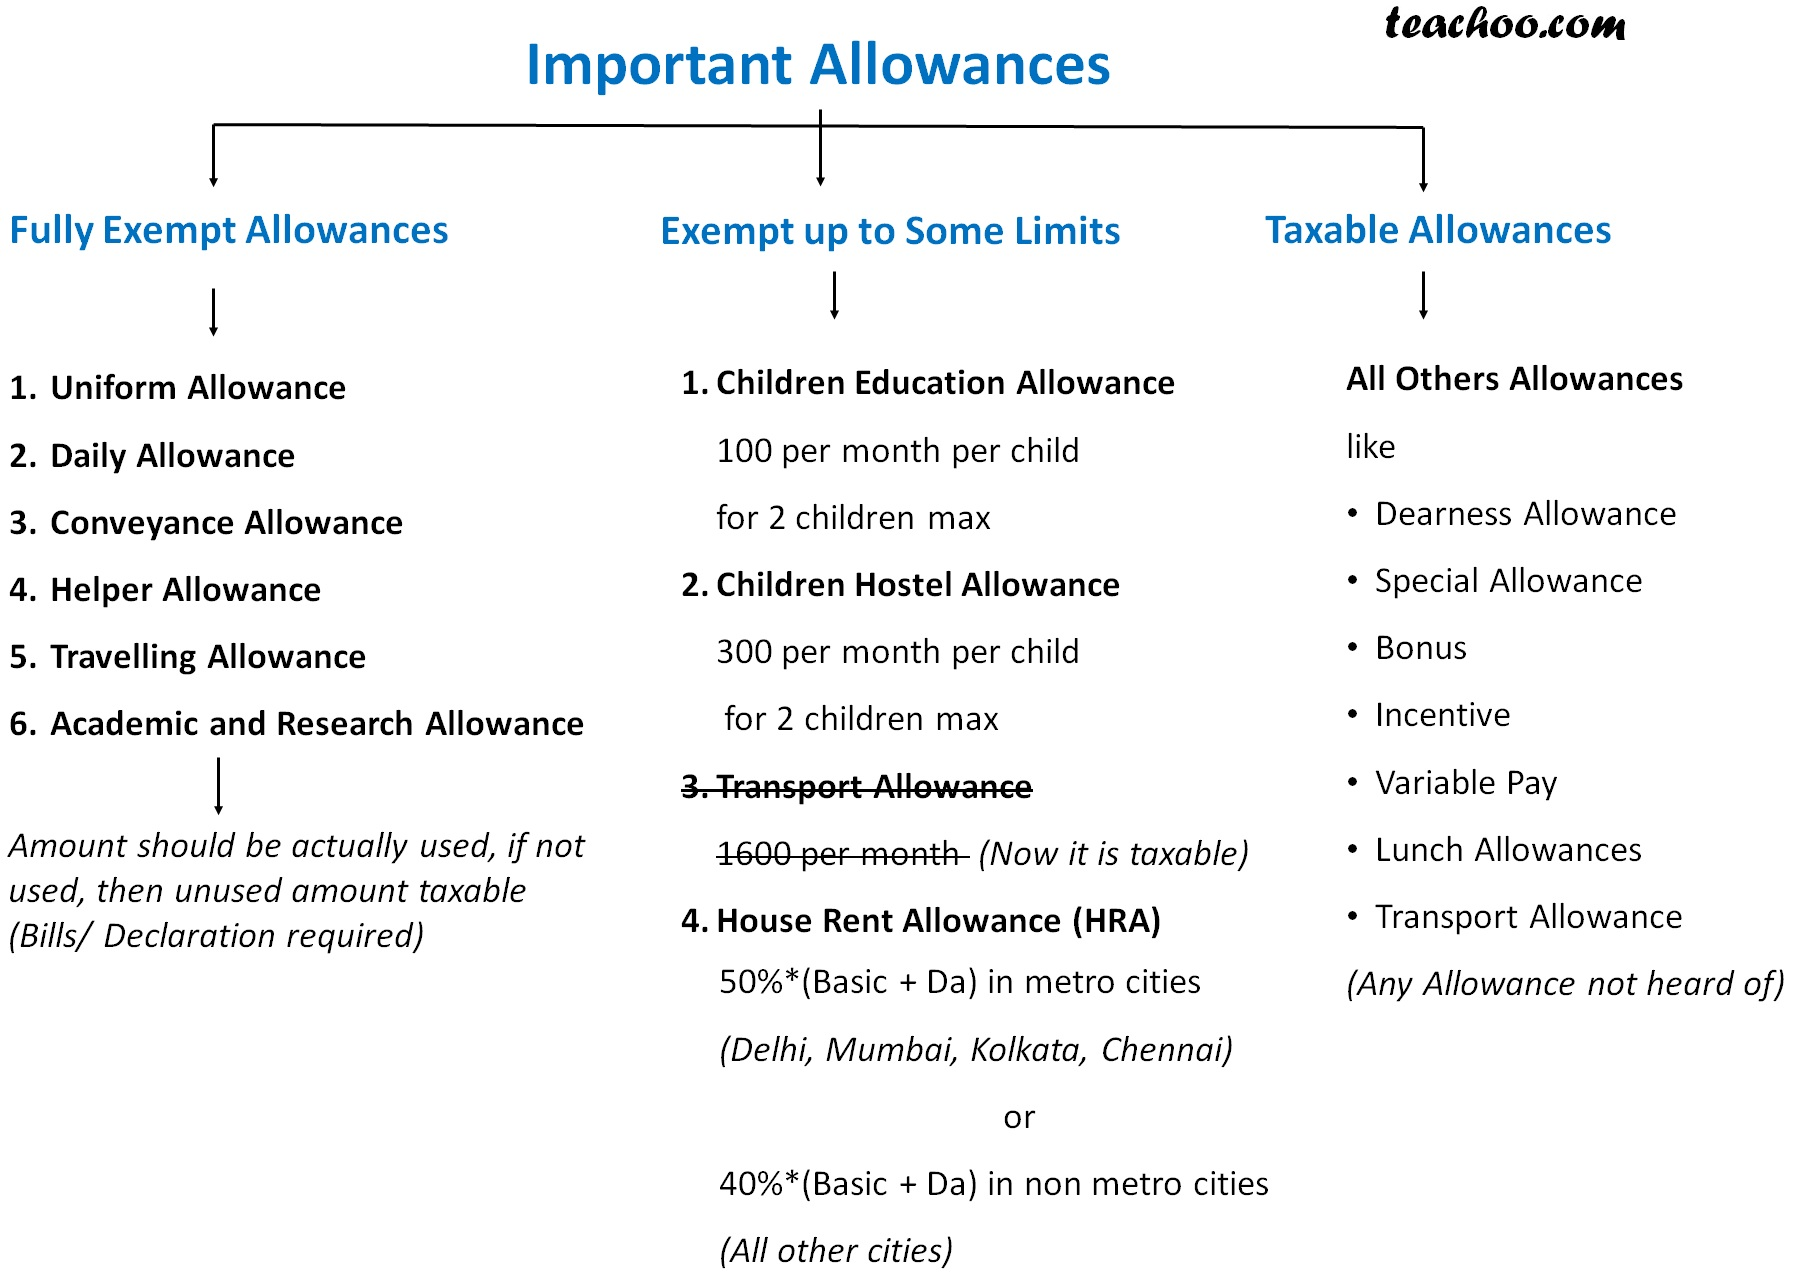 Important Allowances 2.jpg